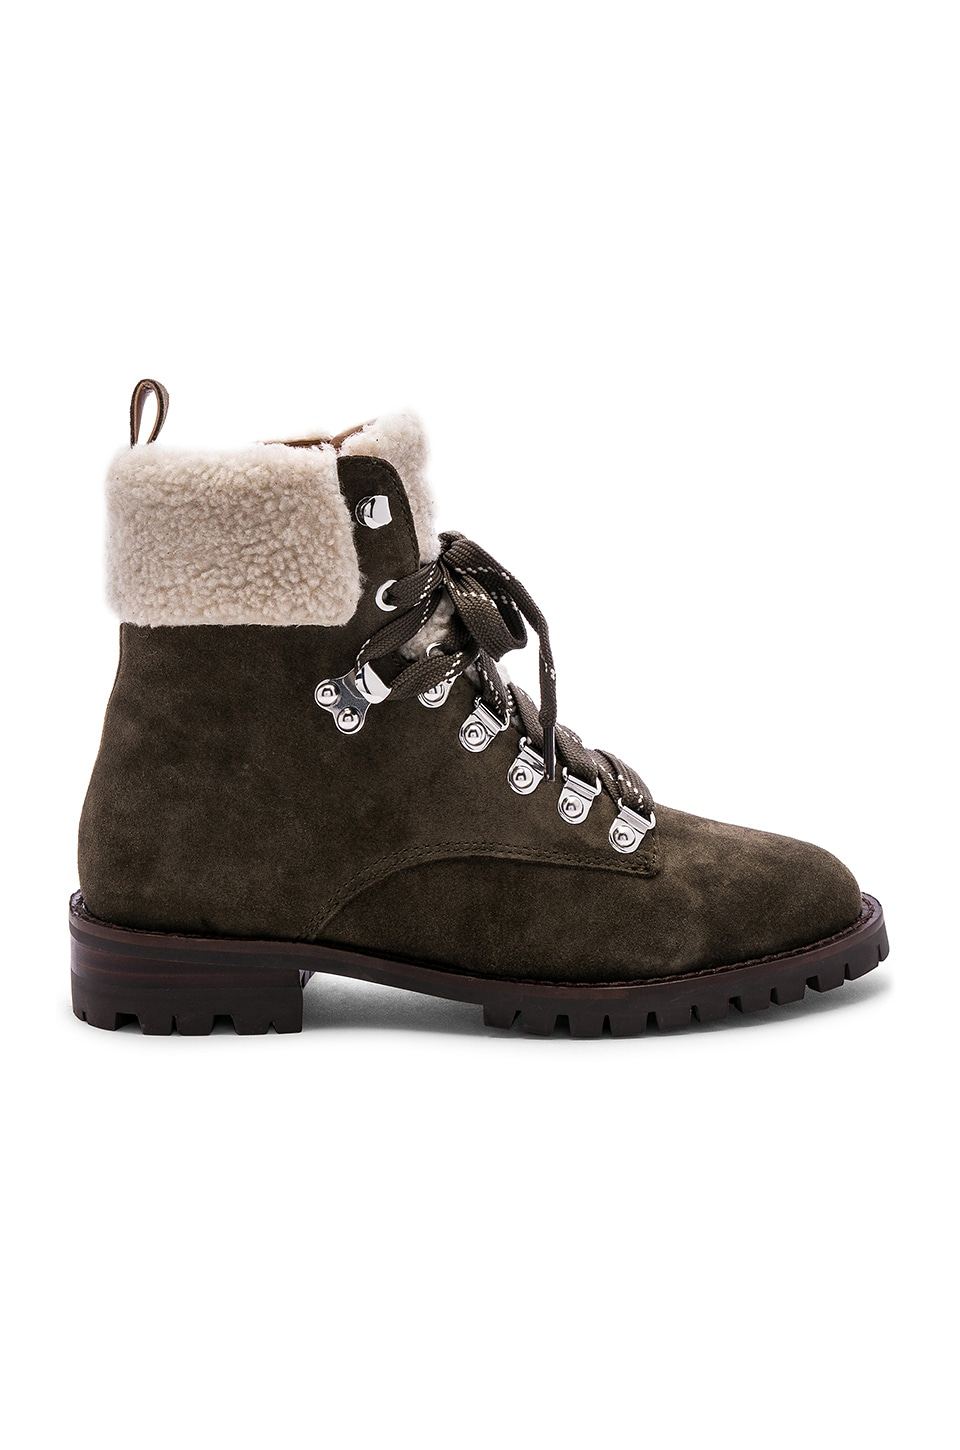 Rebecca Minkoff Jaylin Boot in Olive Suede